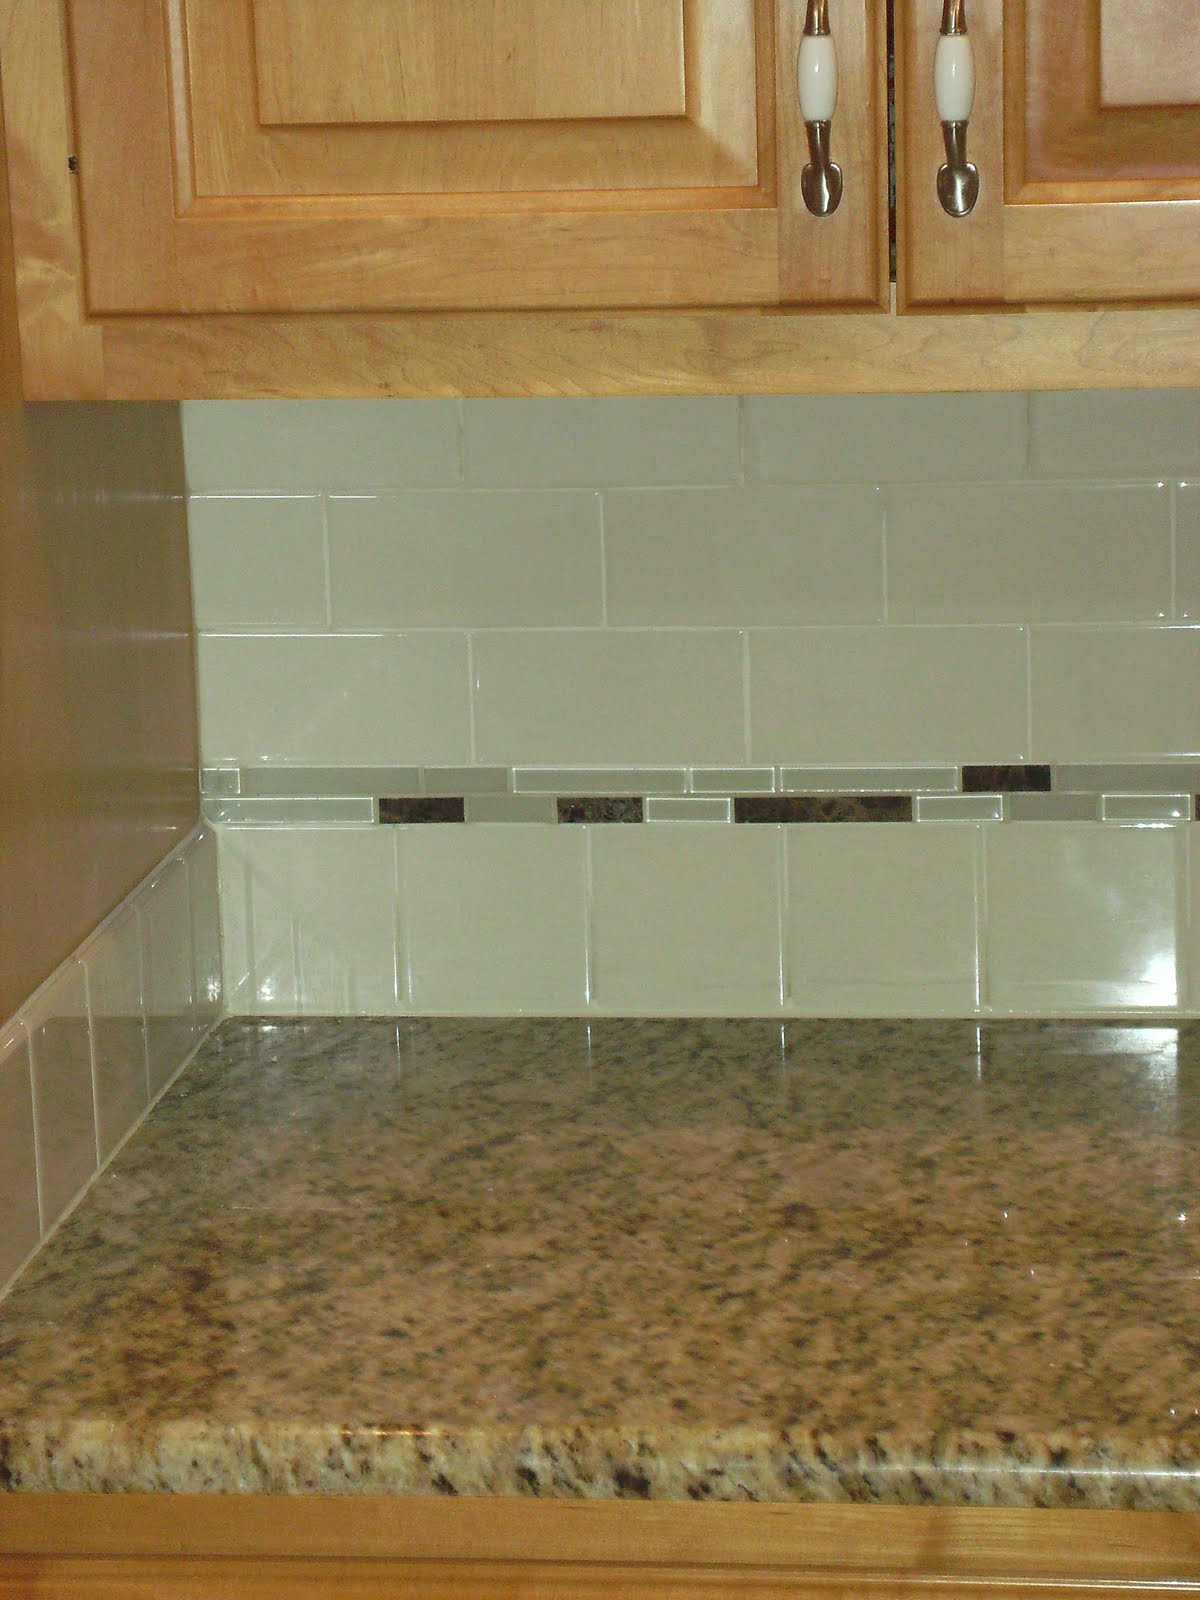 Knapp tile and flooring inc subway tile backsplash - Kitchen backsplash tile ...